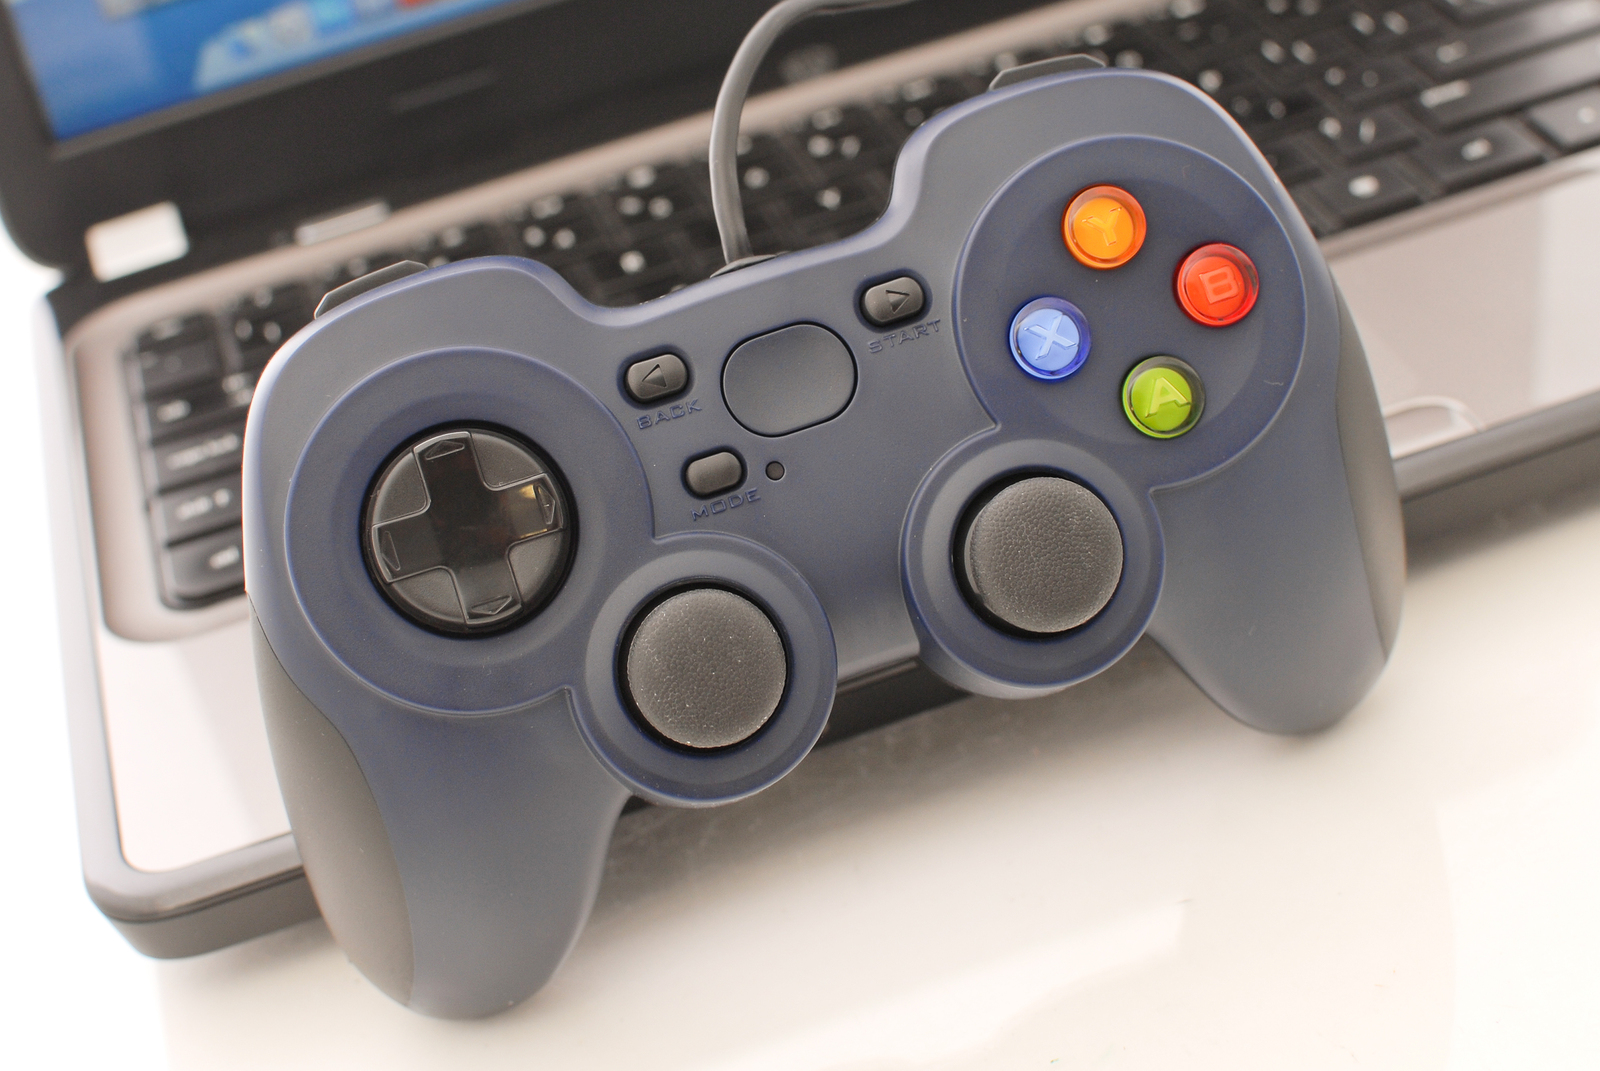 bigstock-Computer-Video-Game-Controller-31276736.jpg